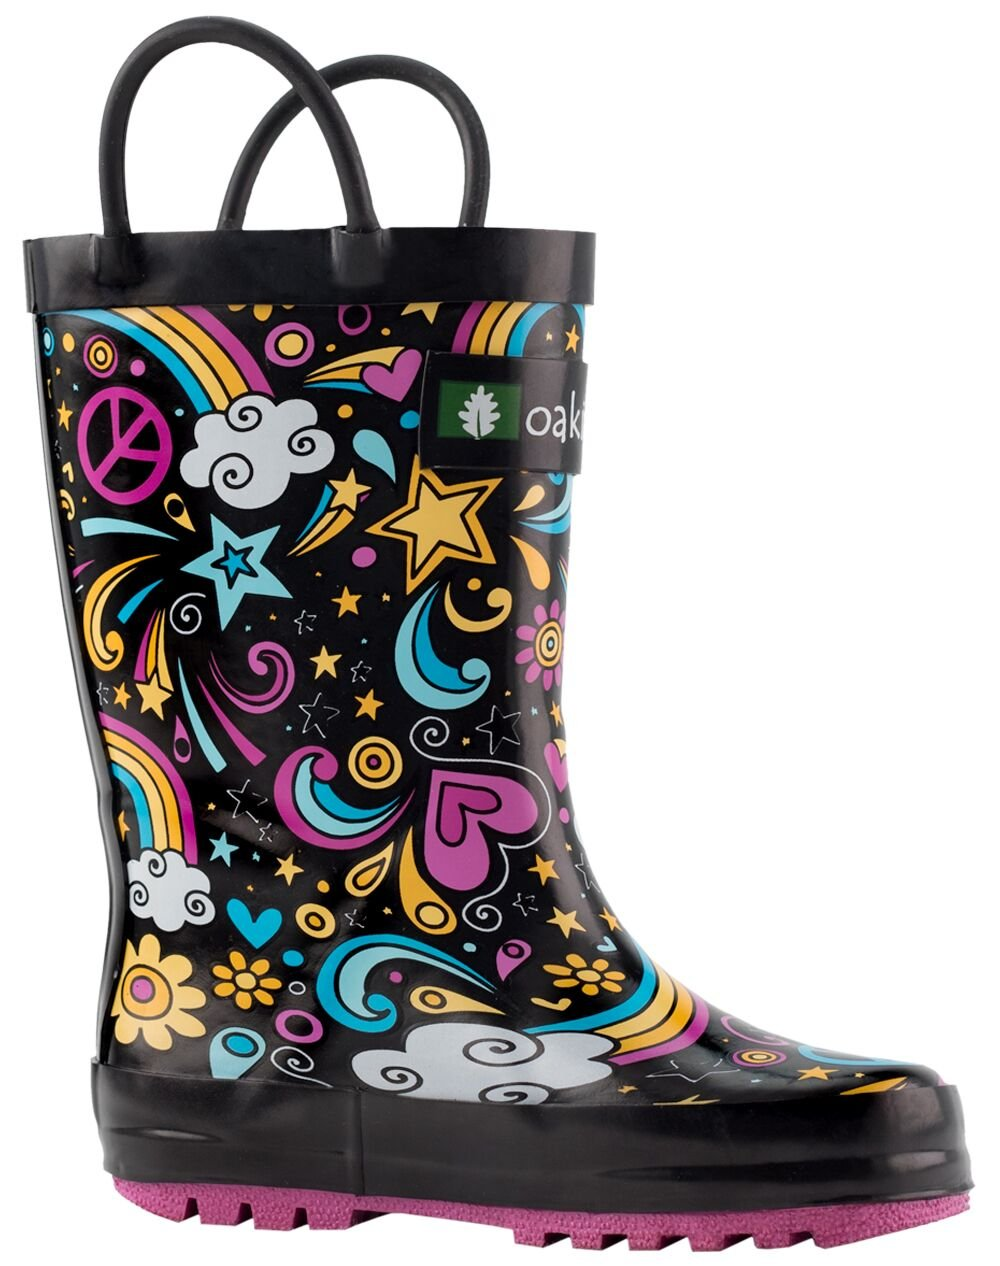 Oakiwear Kids Rubber Rain Boots with Easy-on Handles, Peace, Love & Rainbows, 6T US Toddler, Peace